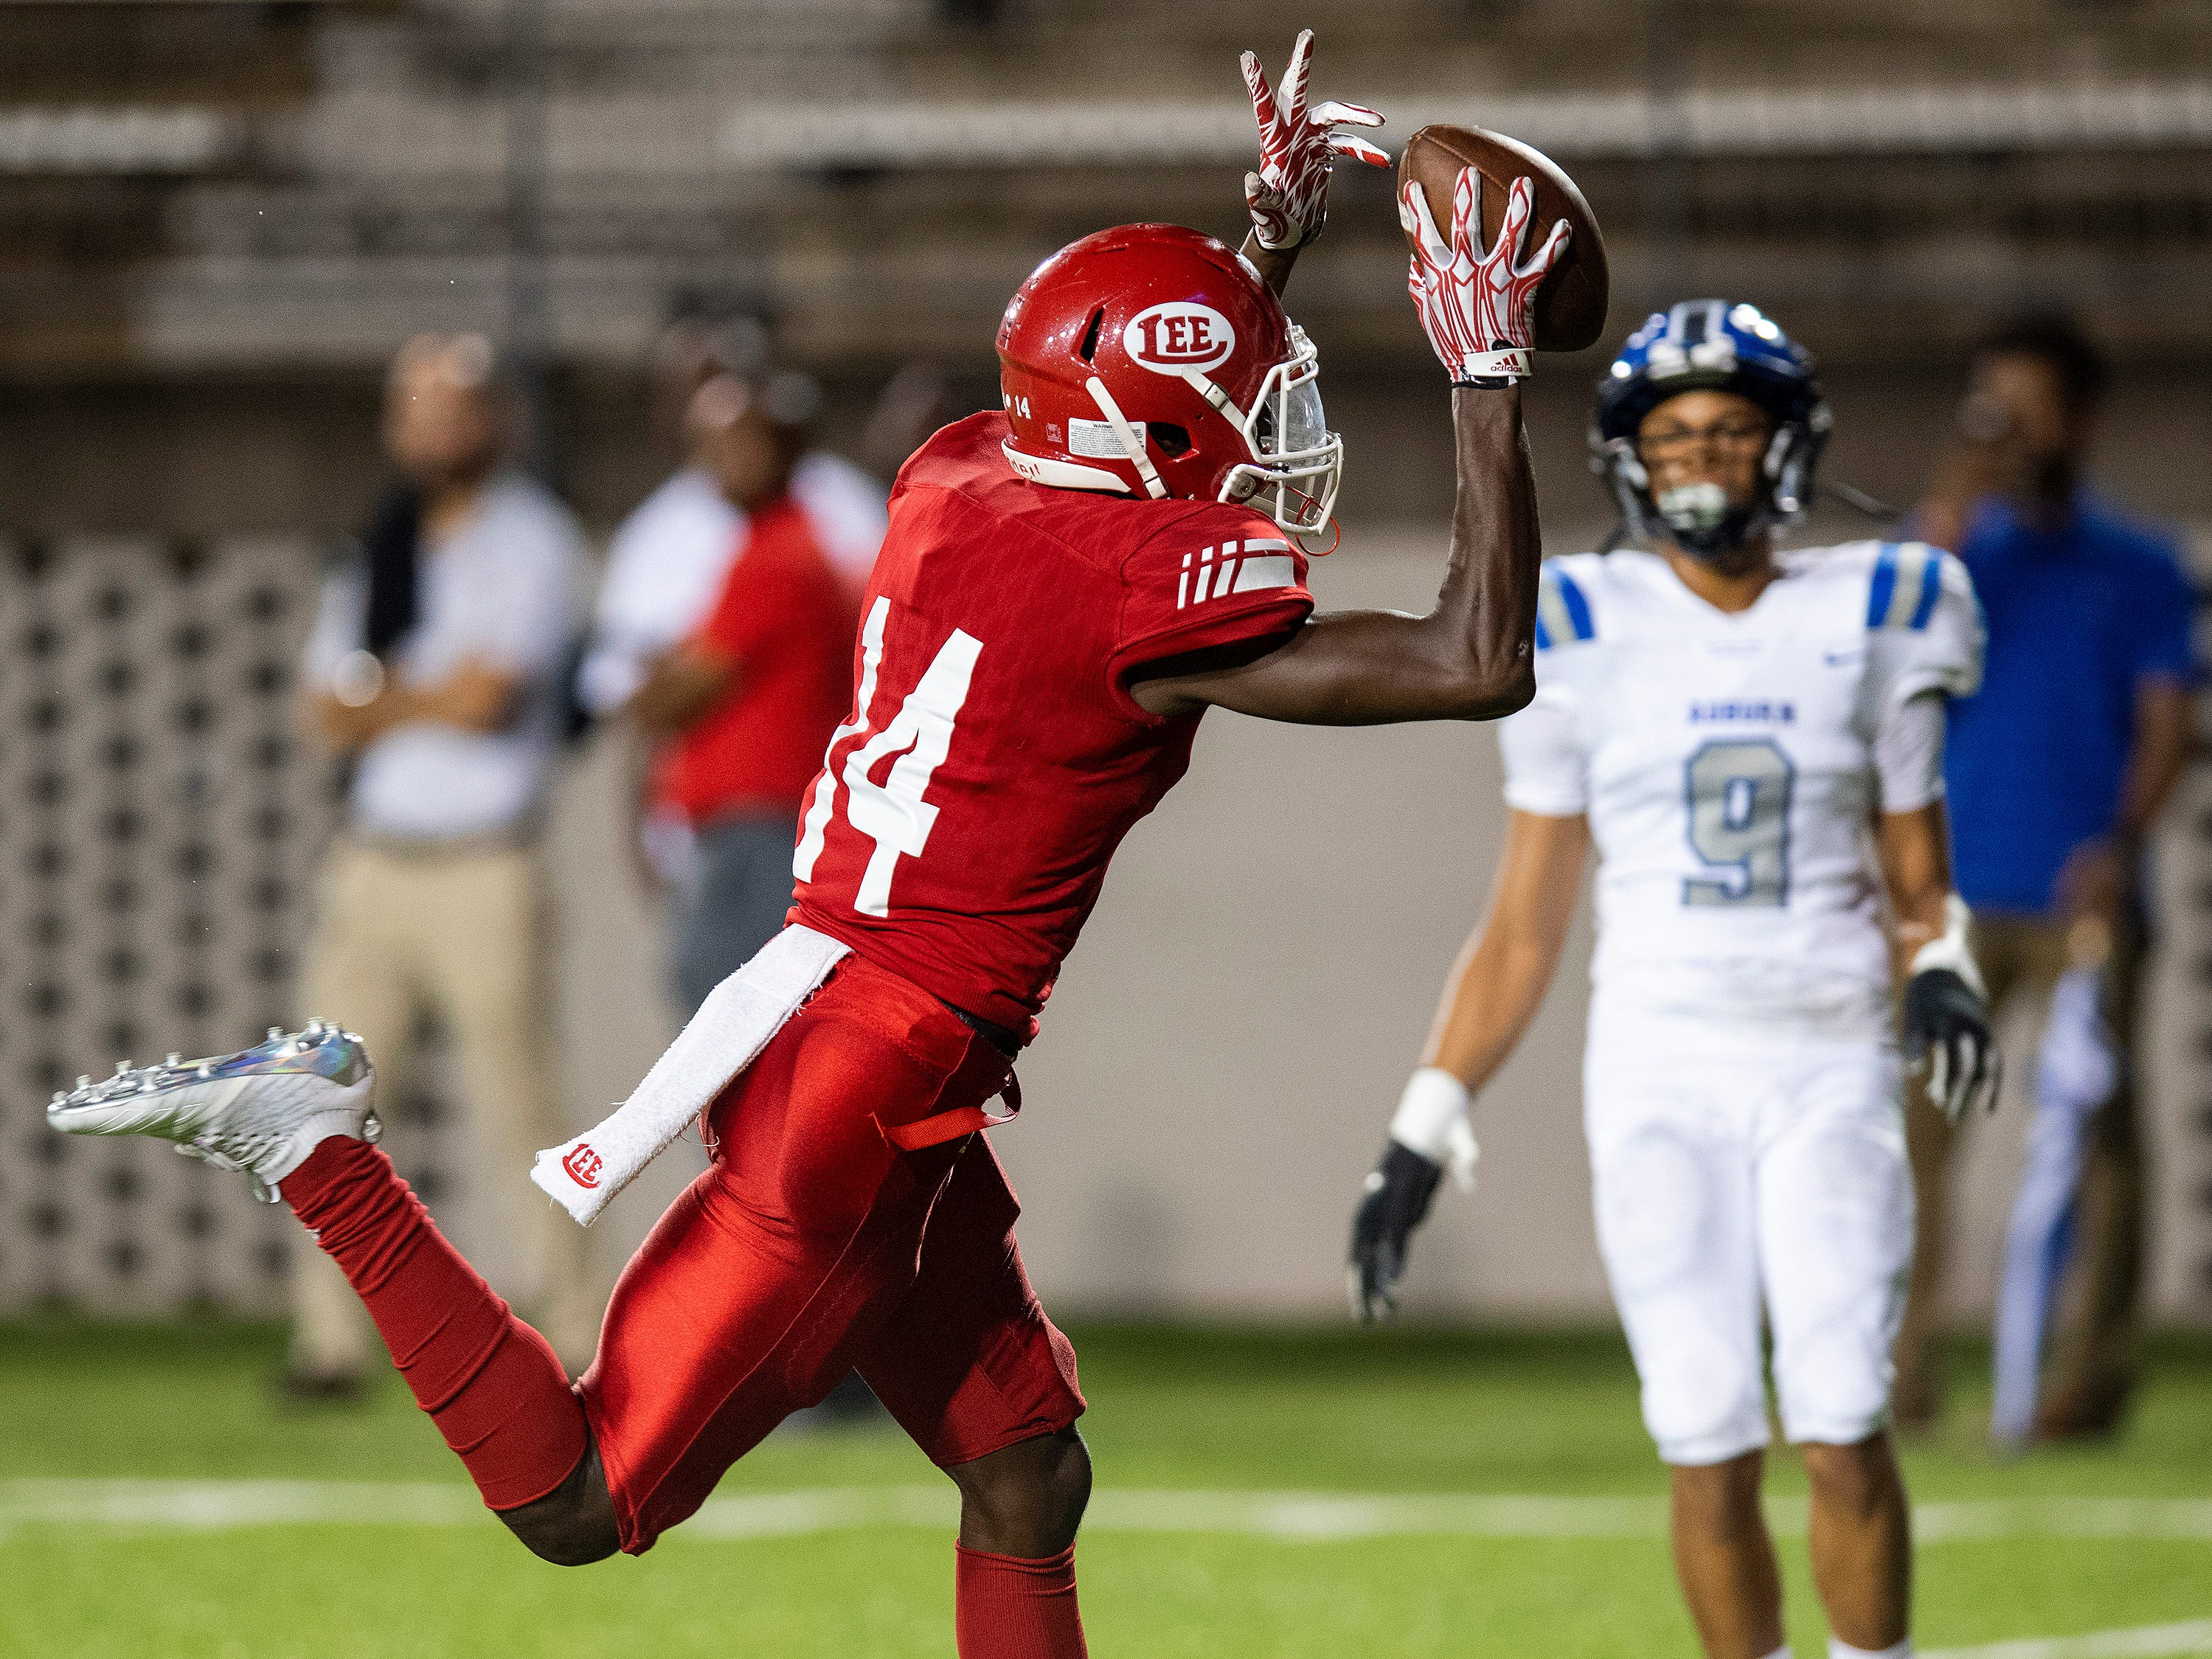 Lee receiver Frederick Scott, Jr., (14) scores a touchdown against Auburn in first half action at Cramton Bowl in Montgomery, Ala., on Thursday September 13, 2018.